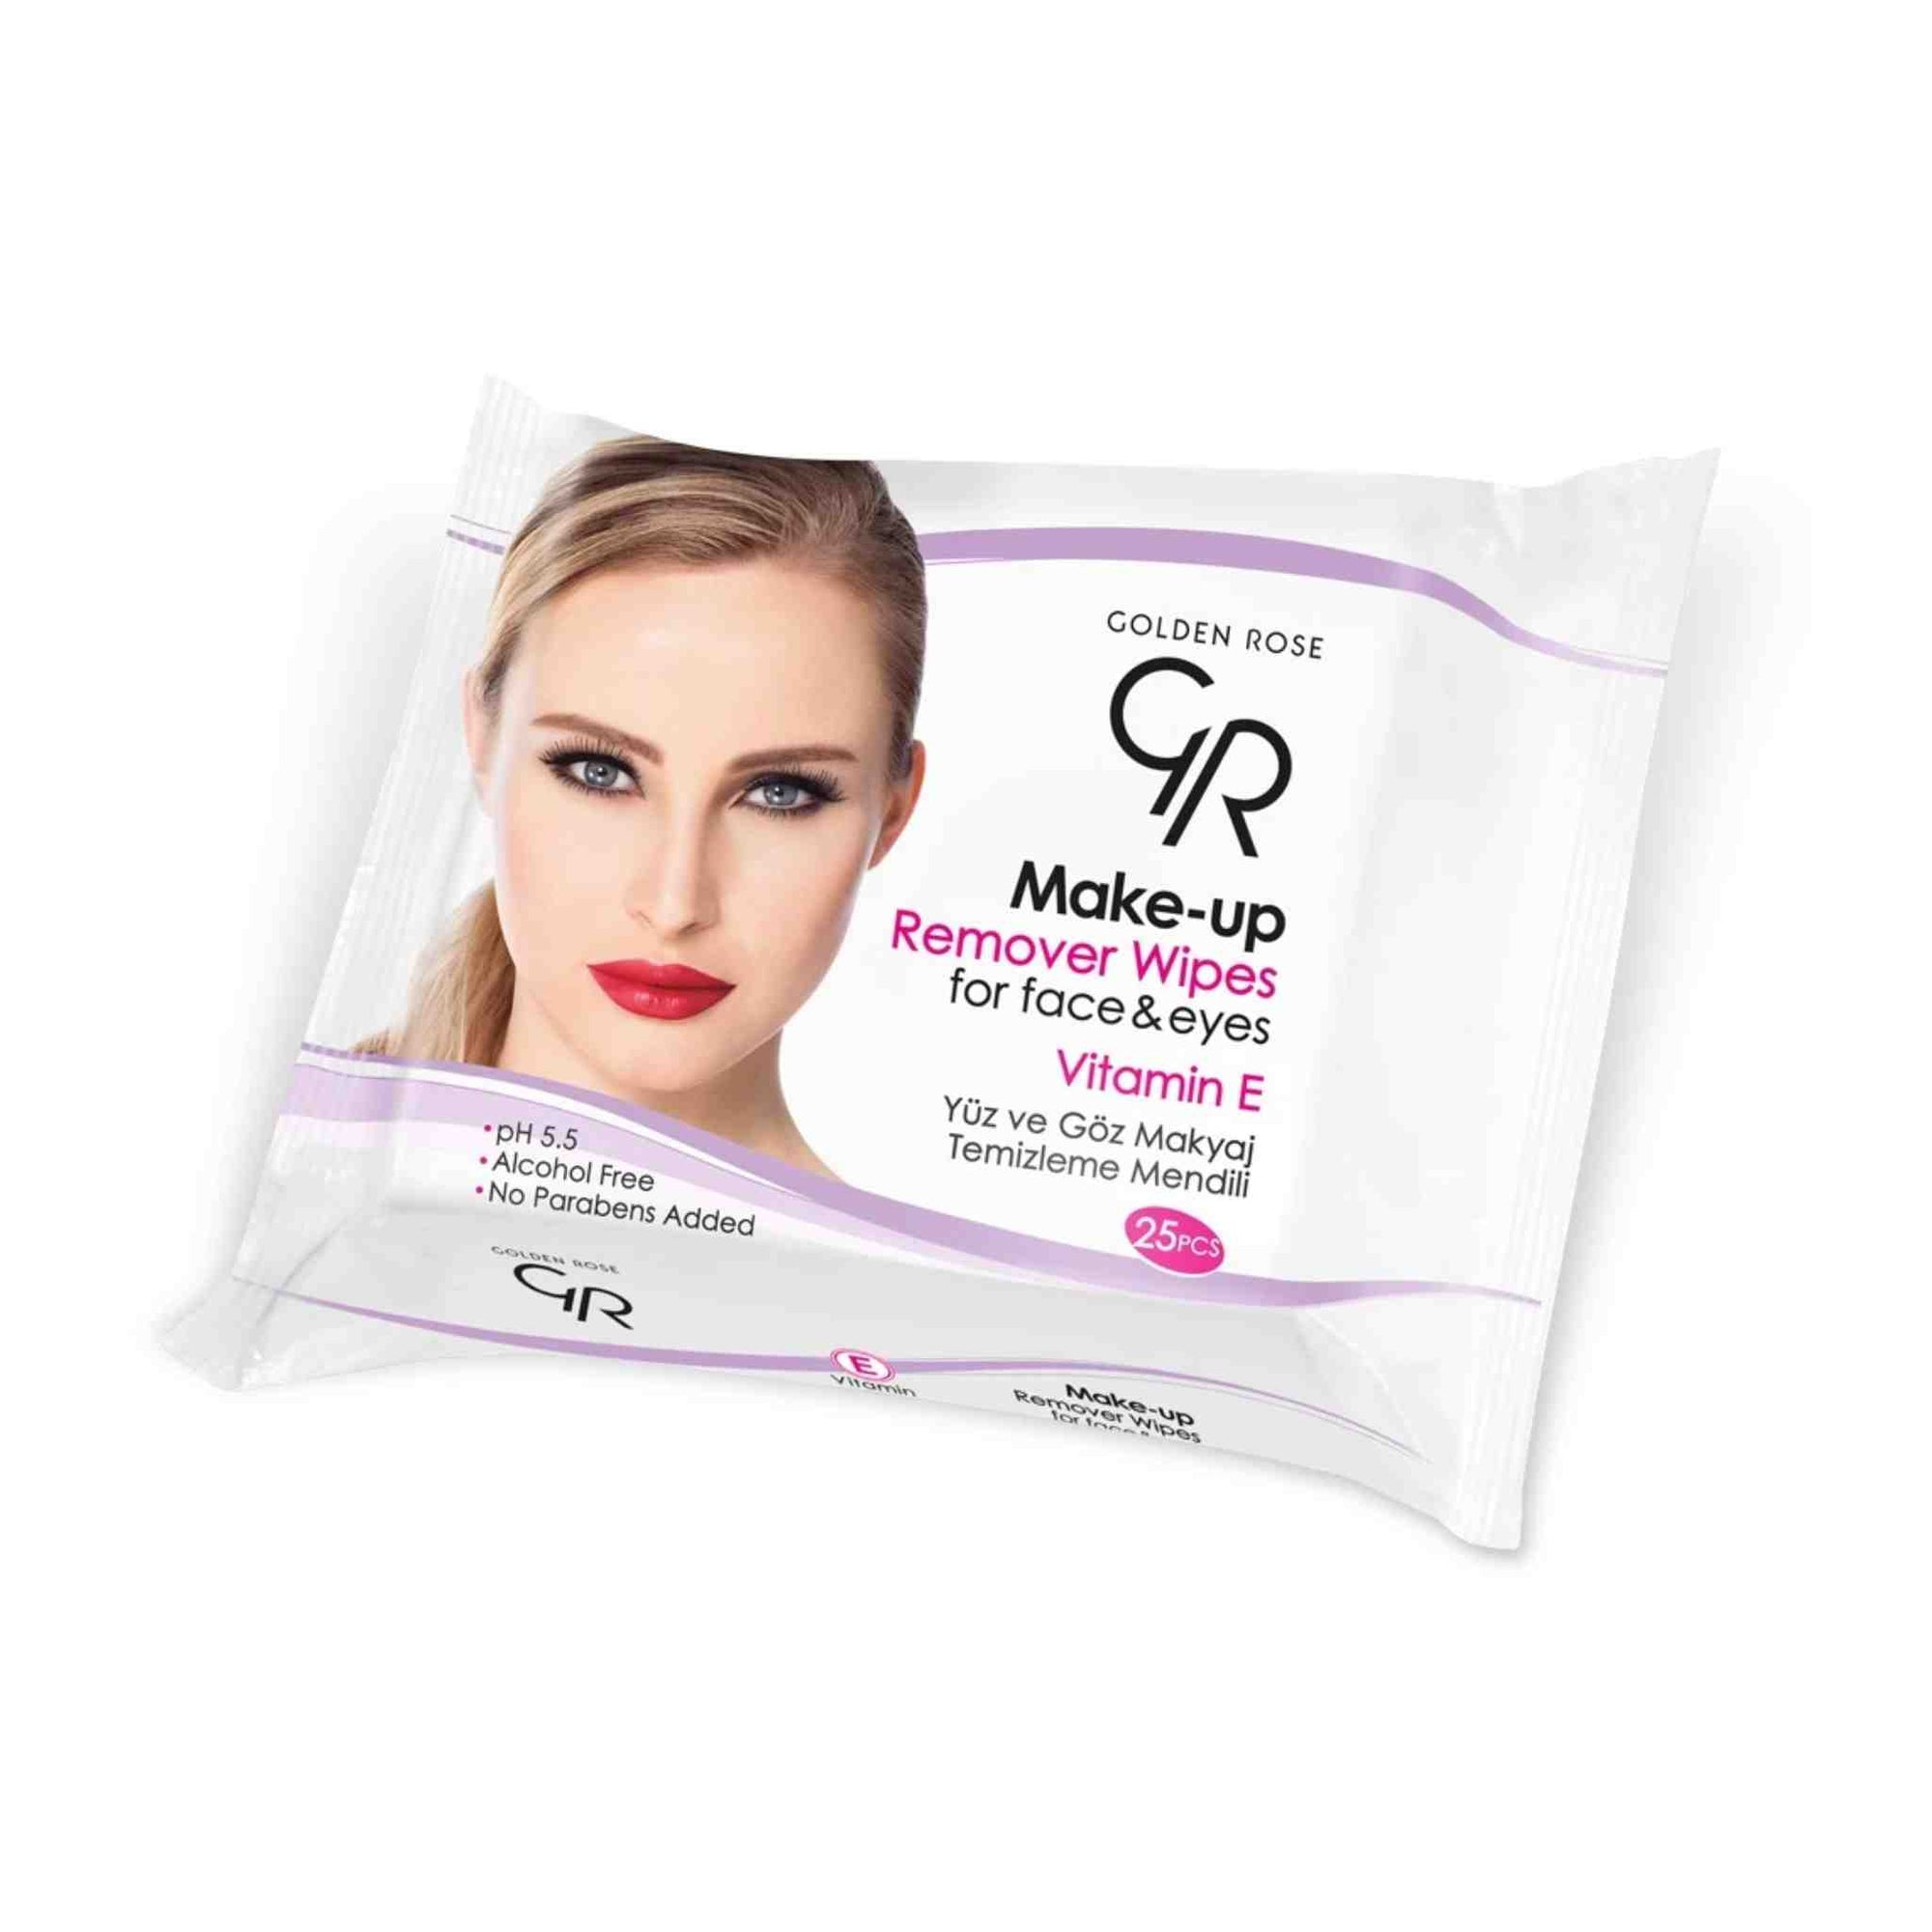 Make-up Cleansing Wipes for Eyes & Face